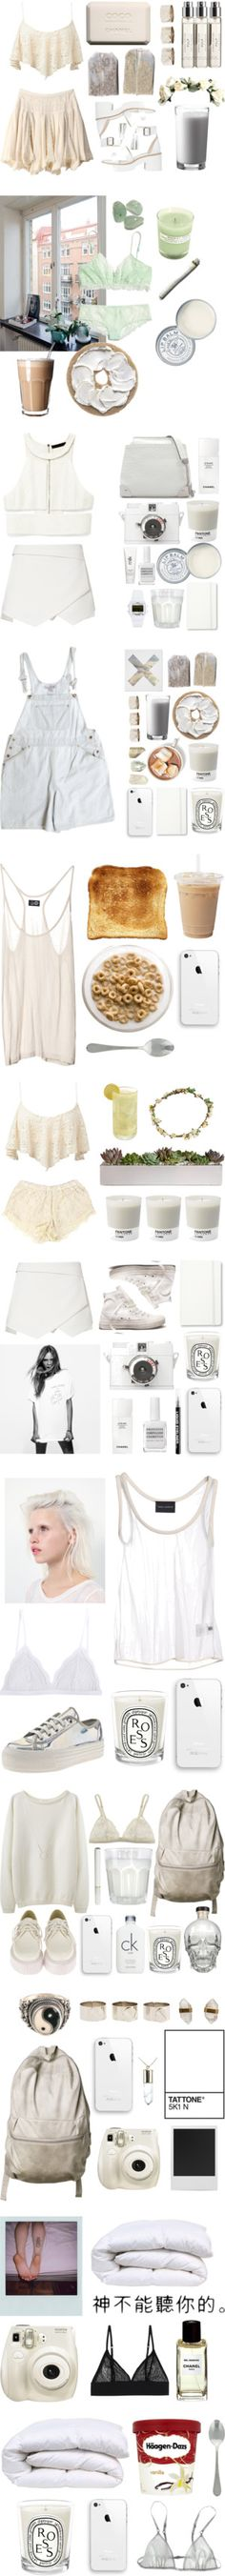 """""""The White Collection"""" by baludna ❤ liked on Polyvore"""